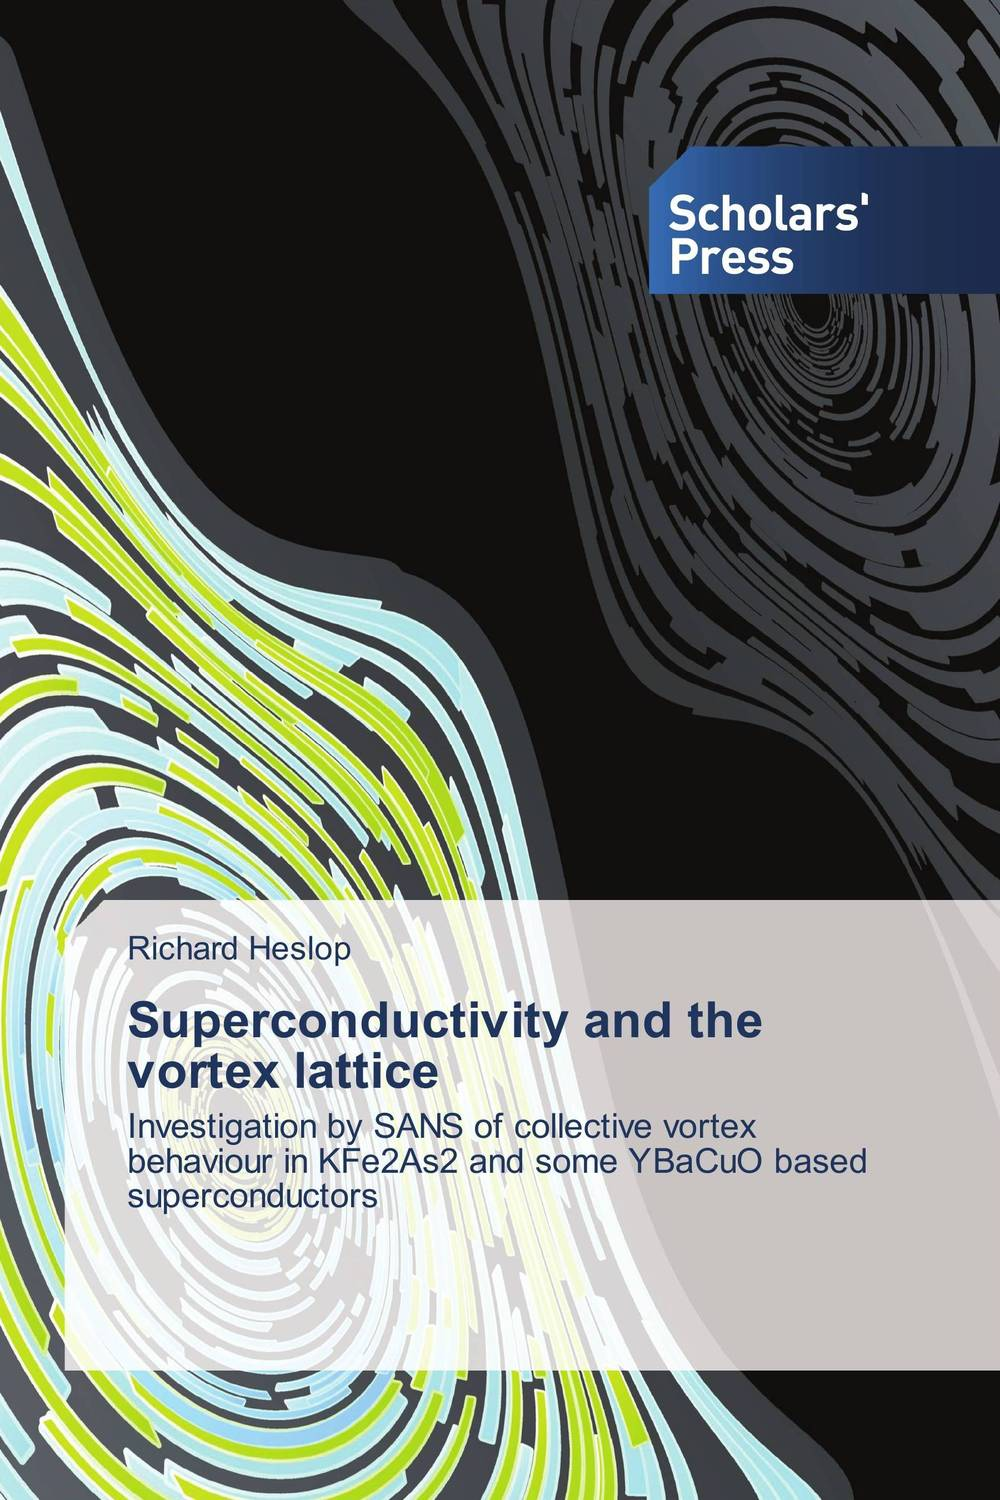 Superconductivity and the vortex lattice carbohydrate doped mgb2 superconductor for magnet application